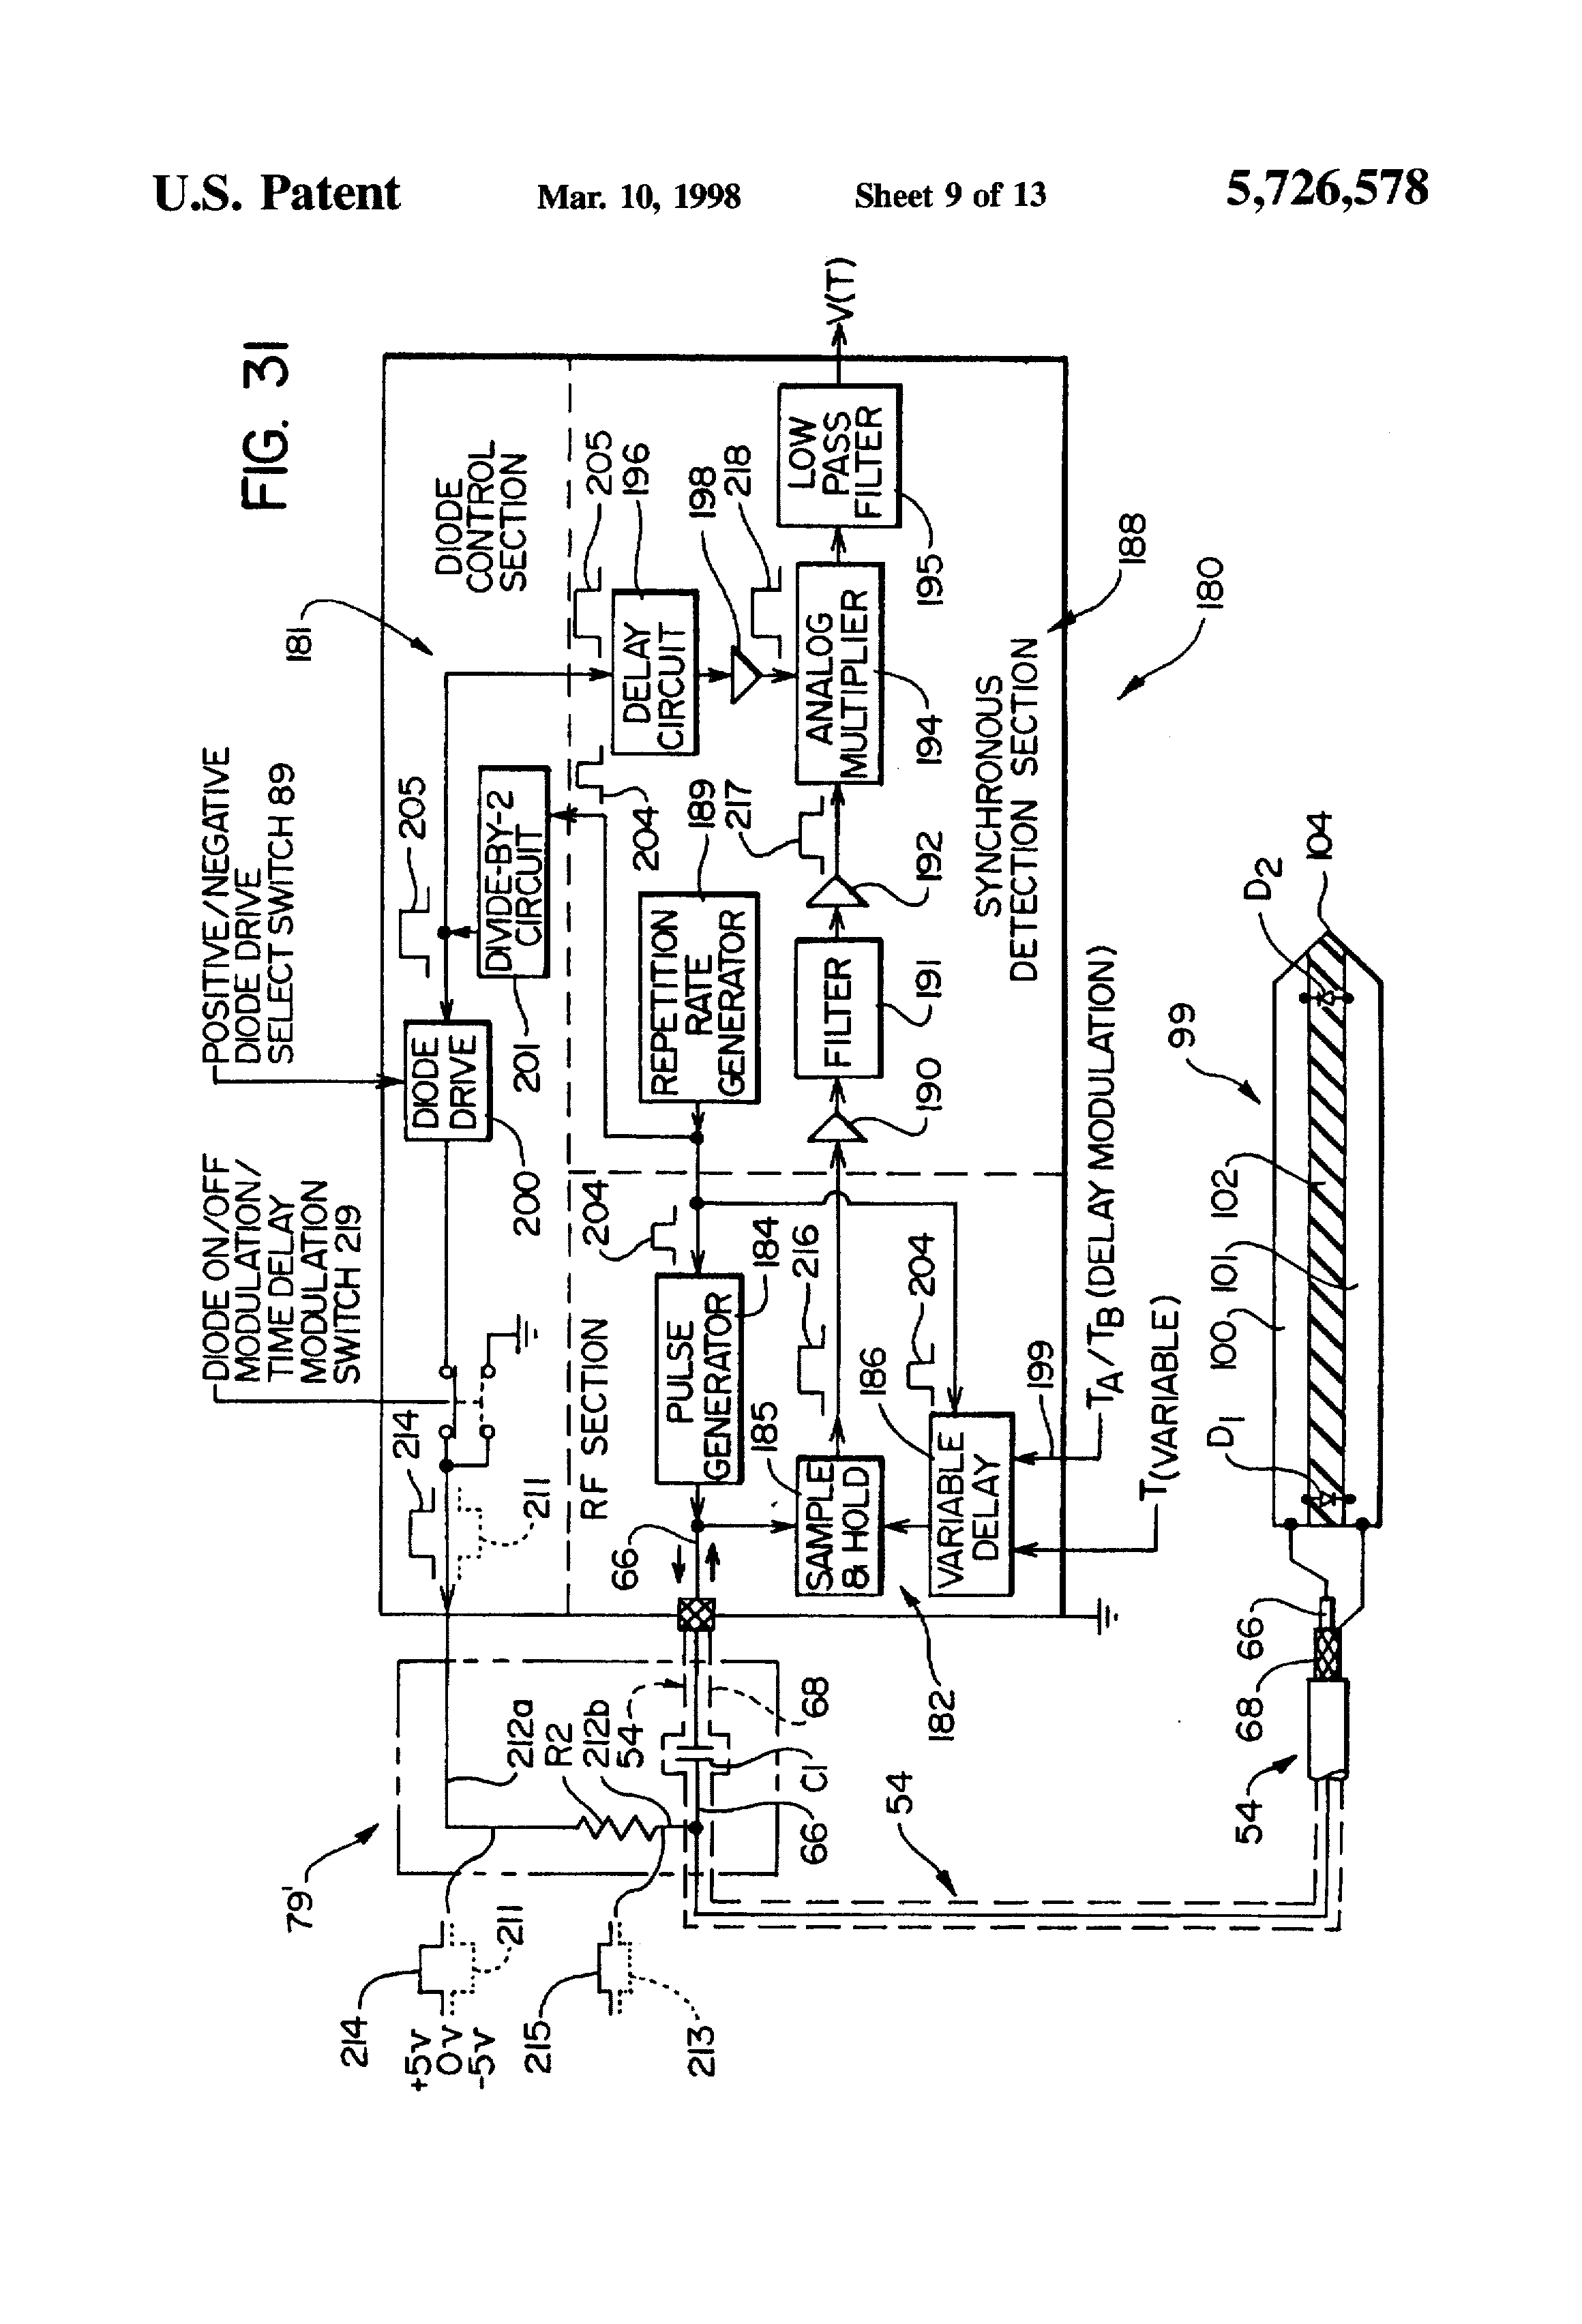 Patent Us5726578 Apparatus And Methods For Time Domain Analog Delay Circuit Drawing